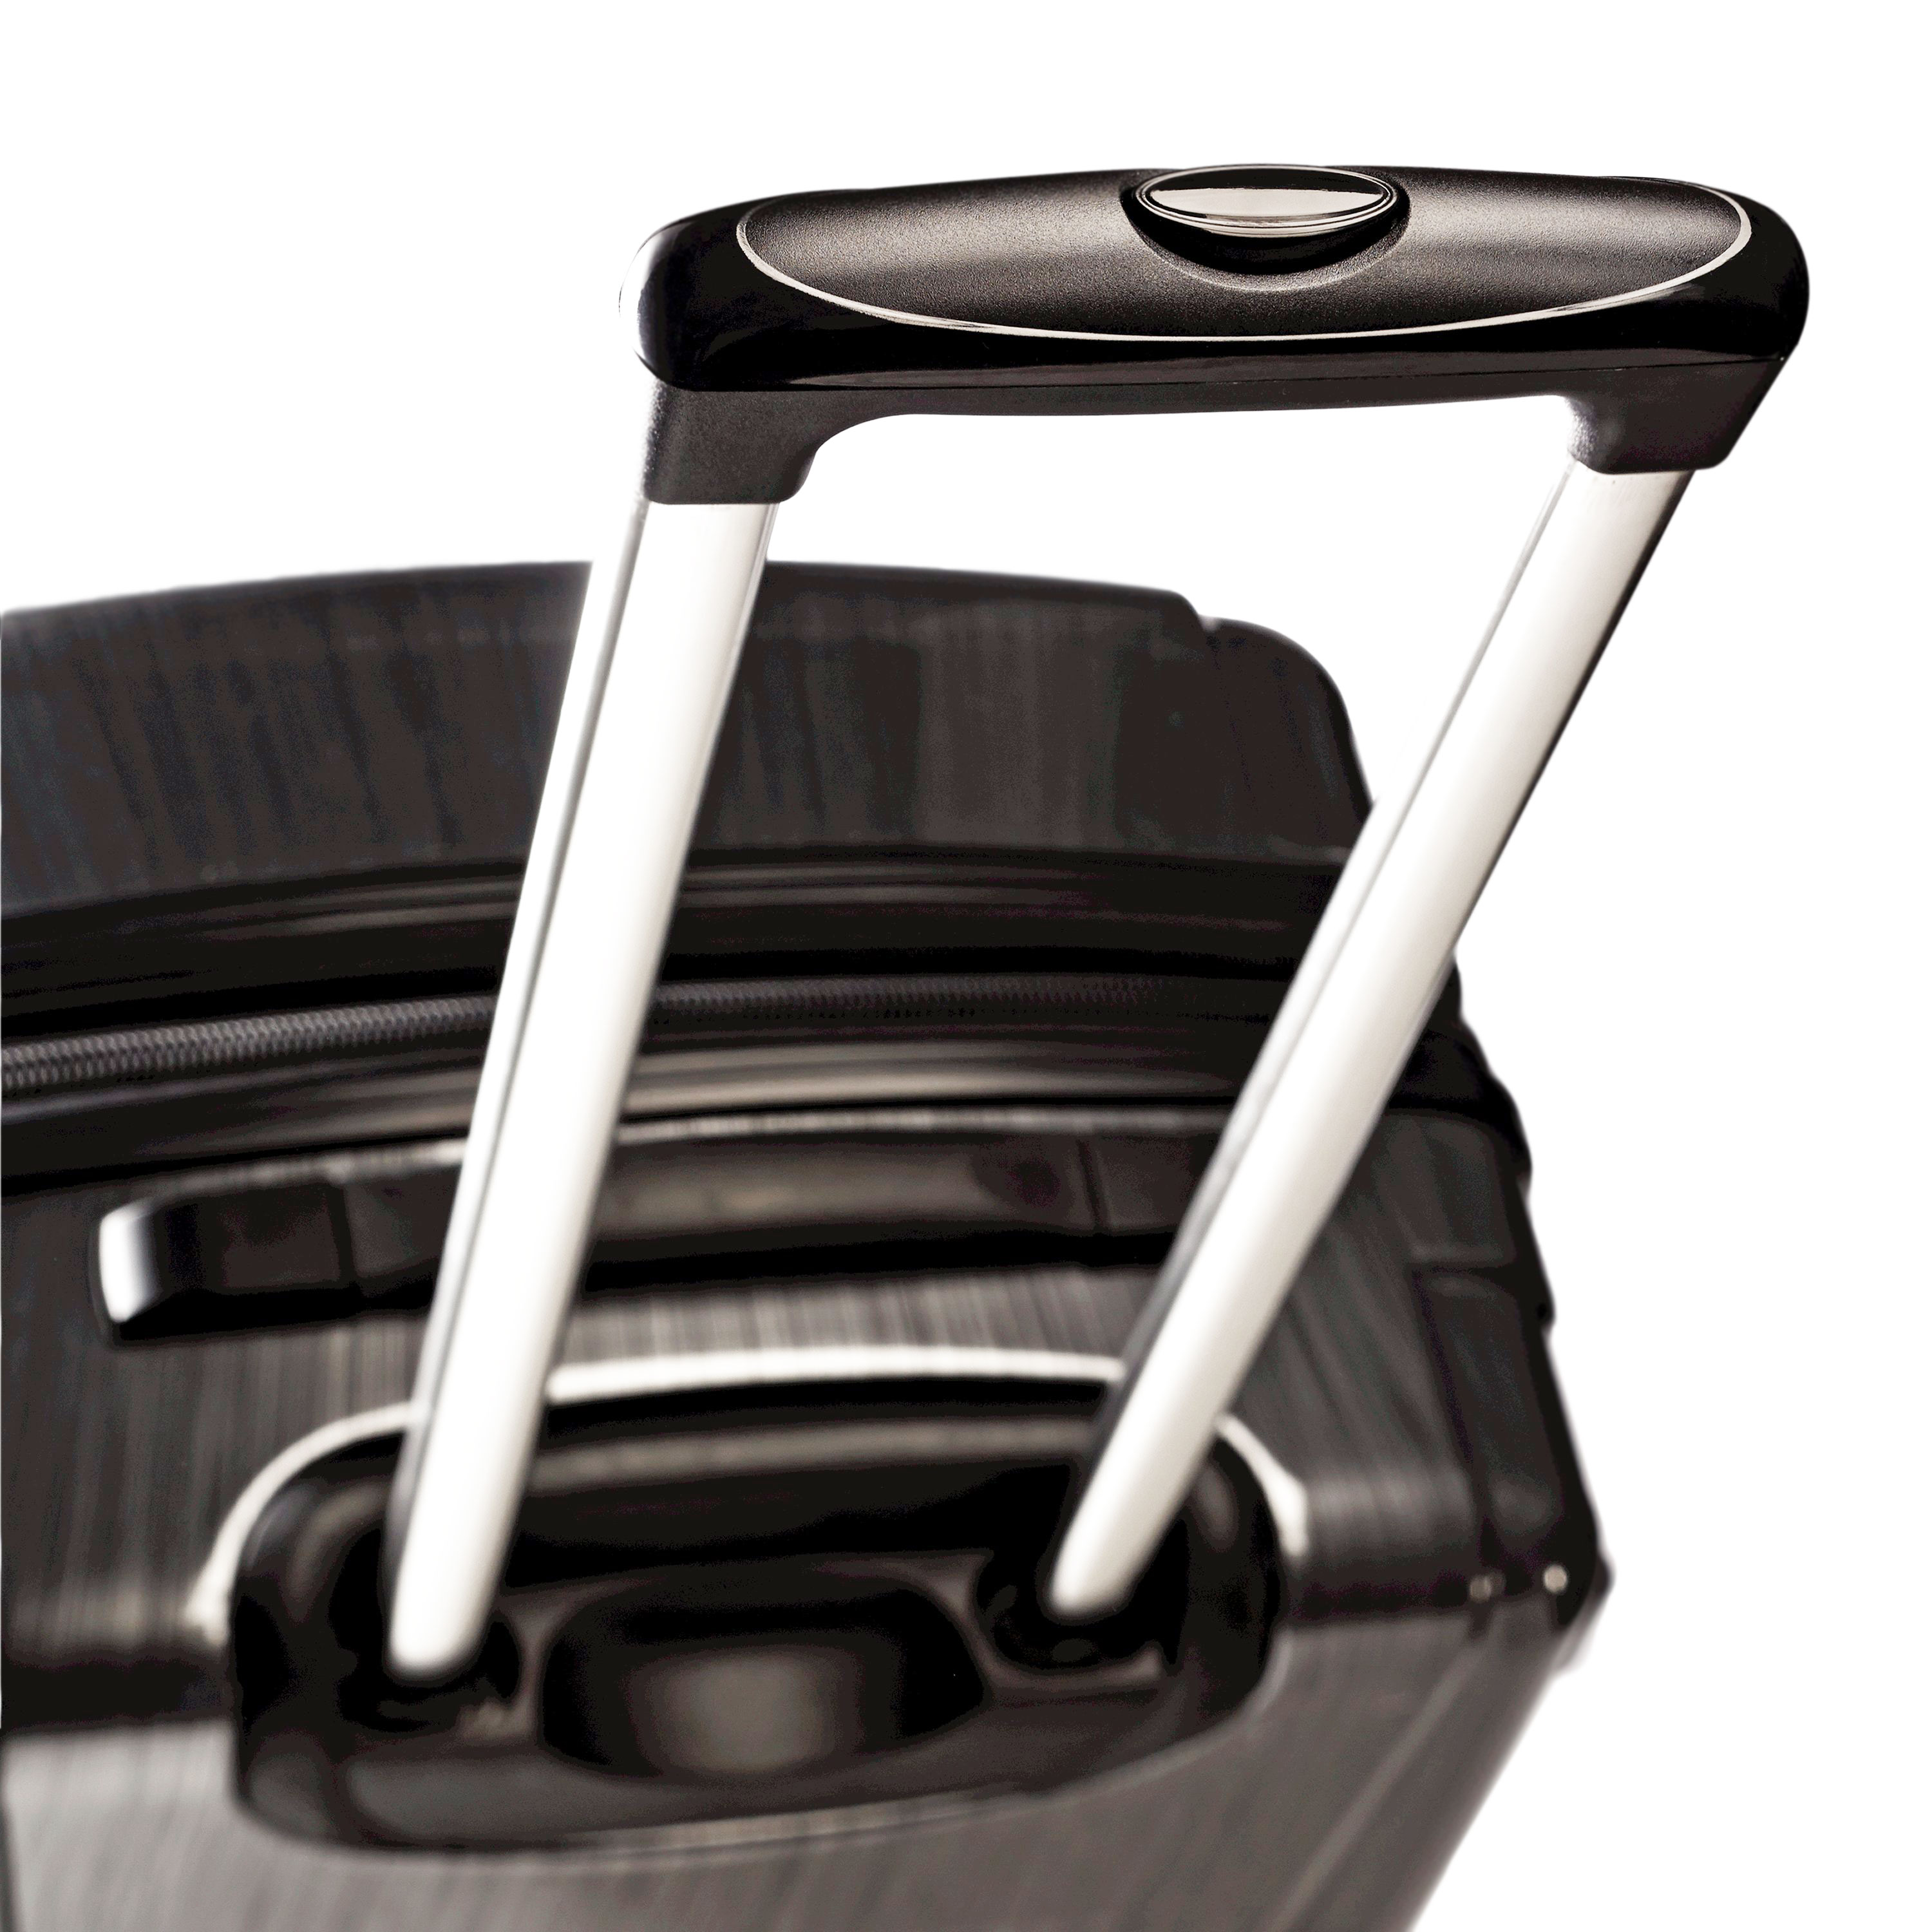 Samsonite-Winfield-2-Fashion-Spinner-Luggage thumbnail 11